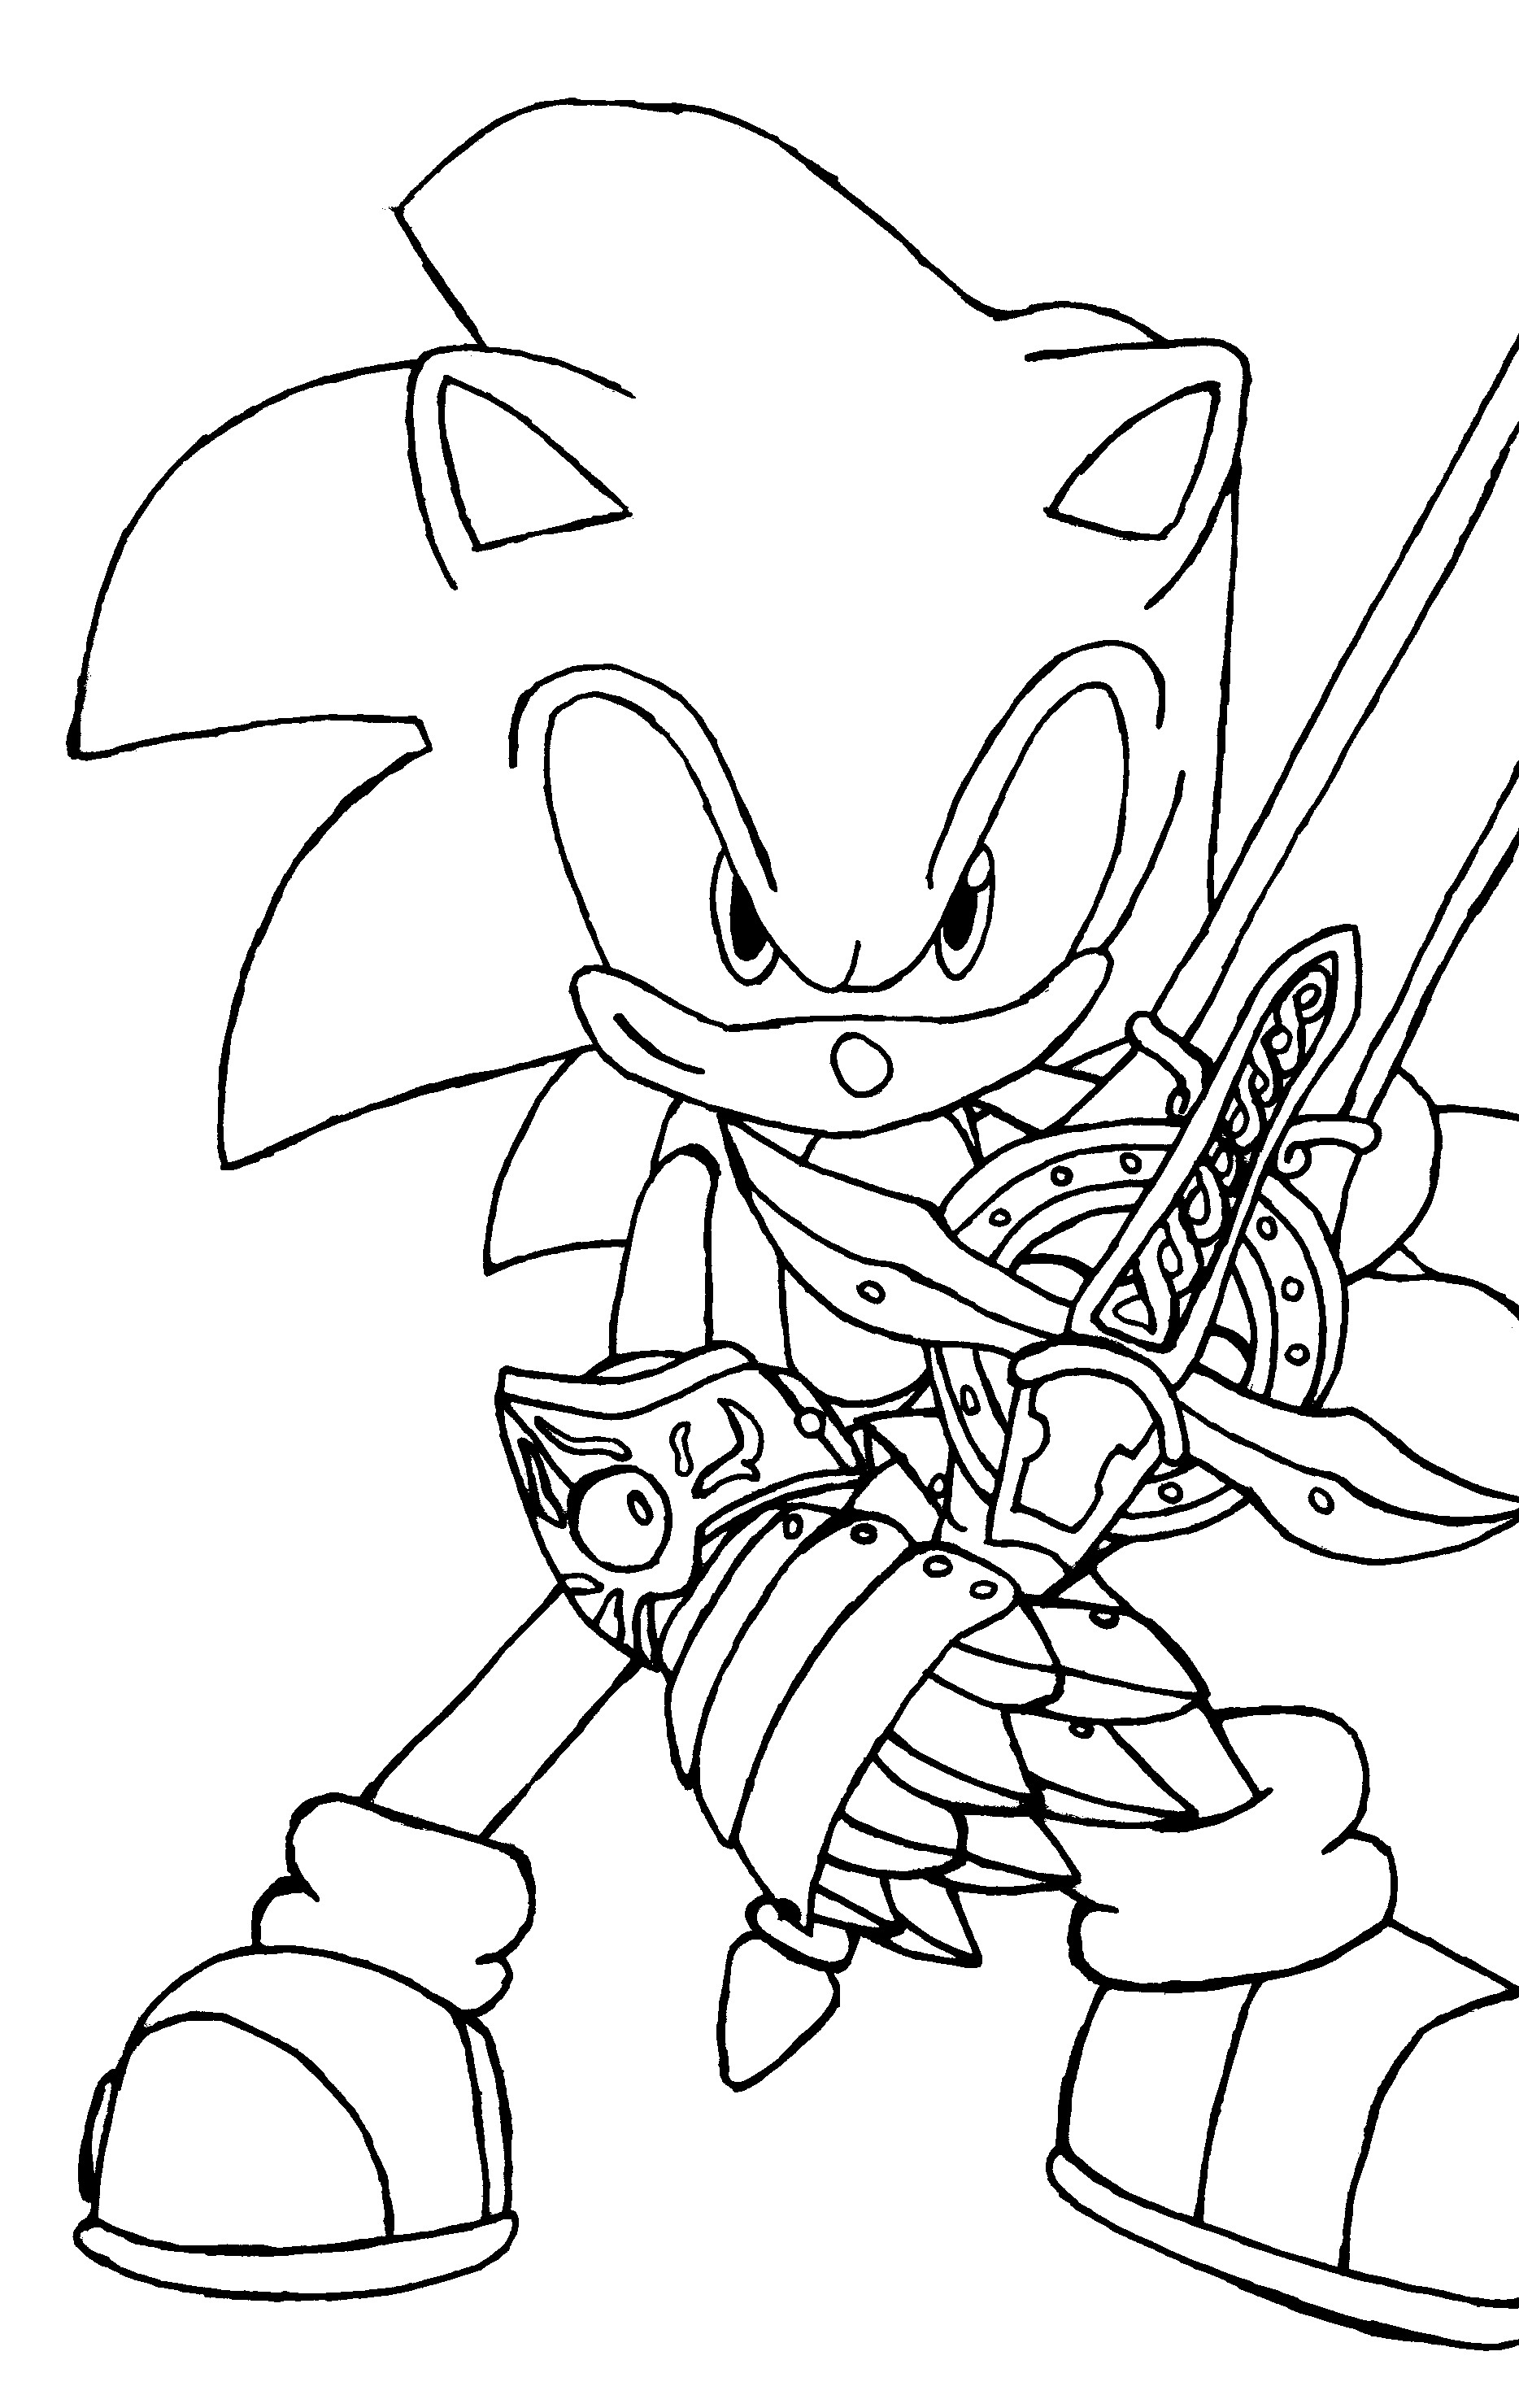 sonic the hedgehog printable coloring pages sonic the hedgehog coloring pages to download and print hedgehog the coloring pages sonic printable